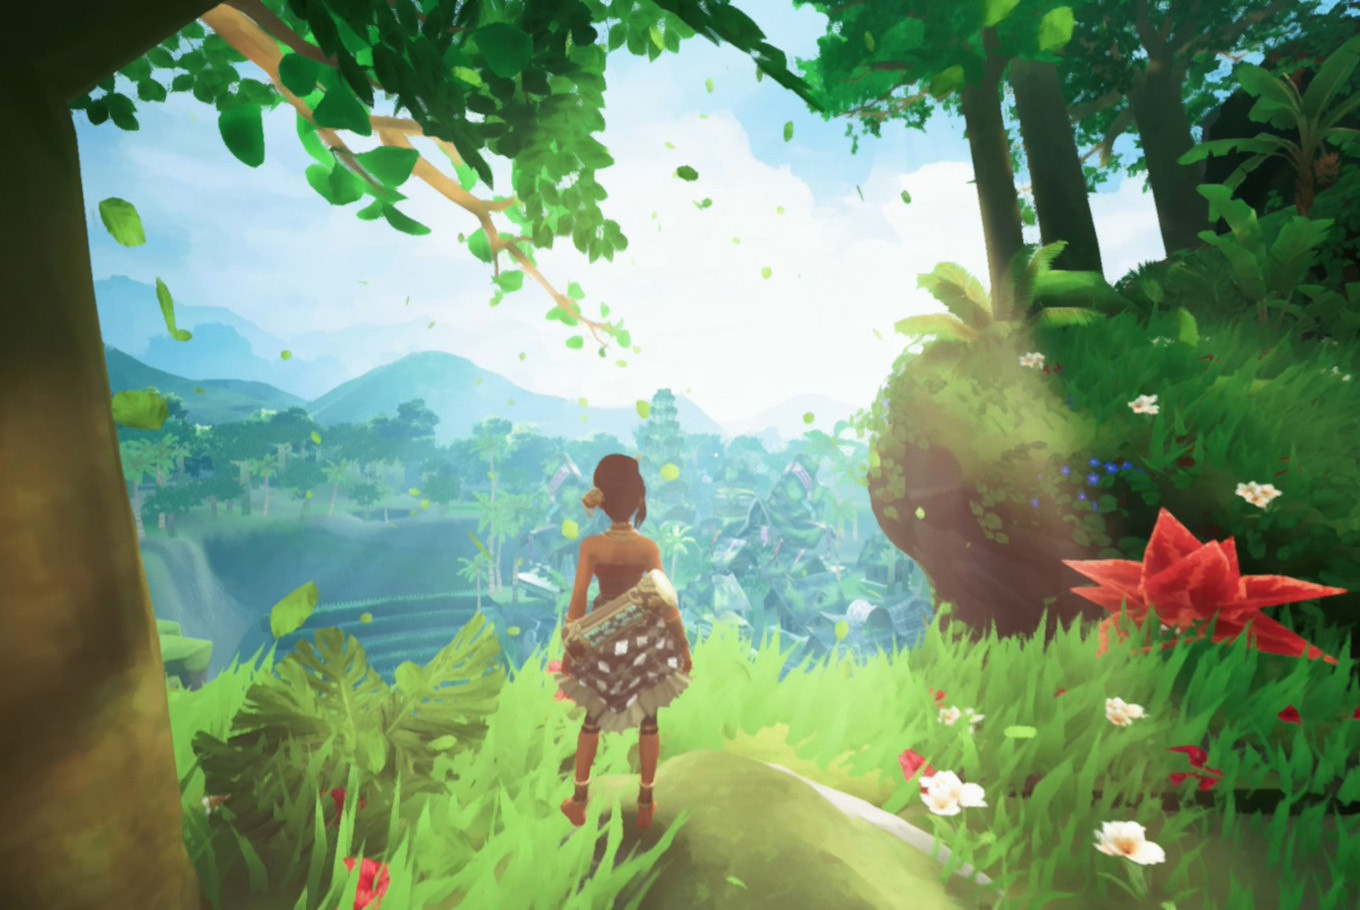 Agate, Telkom team up for Bali-themed puzzle adventure game